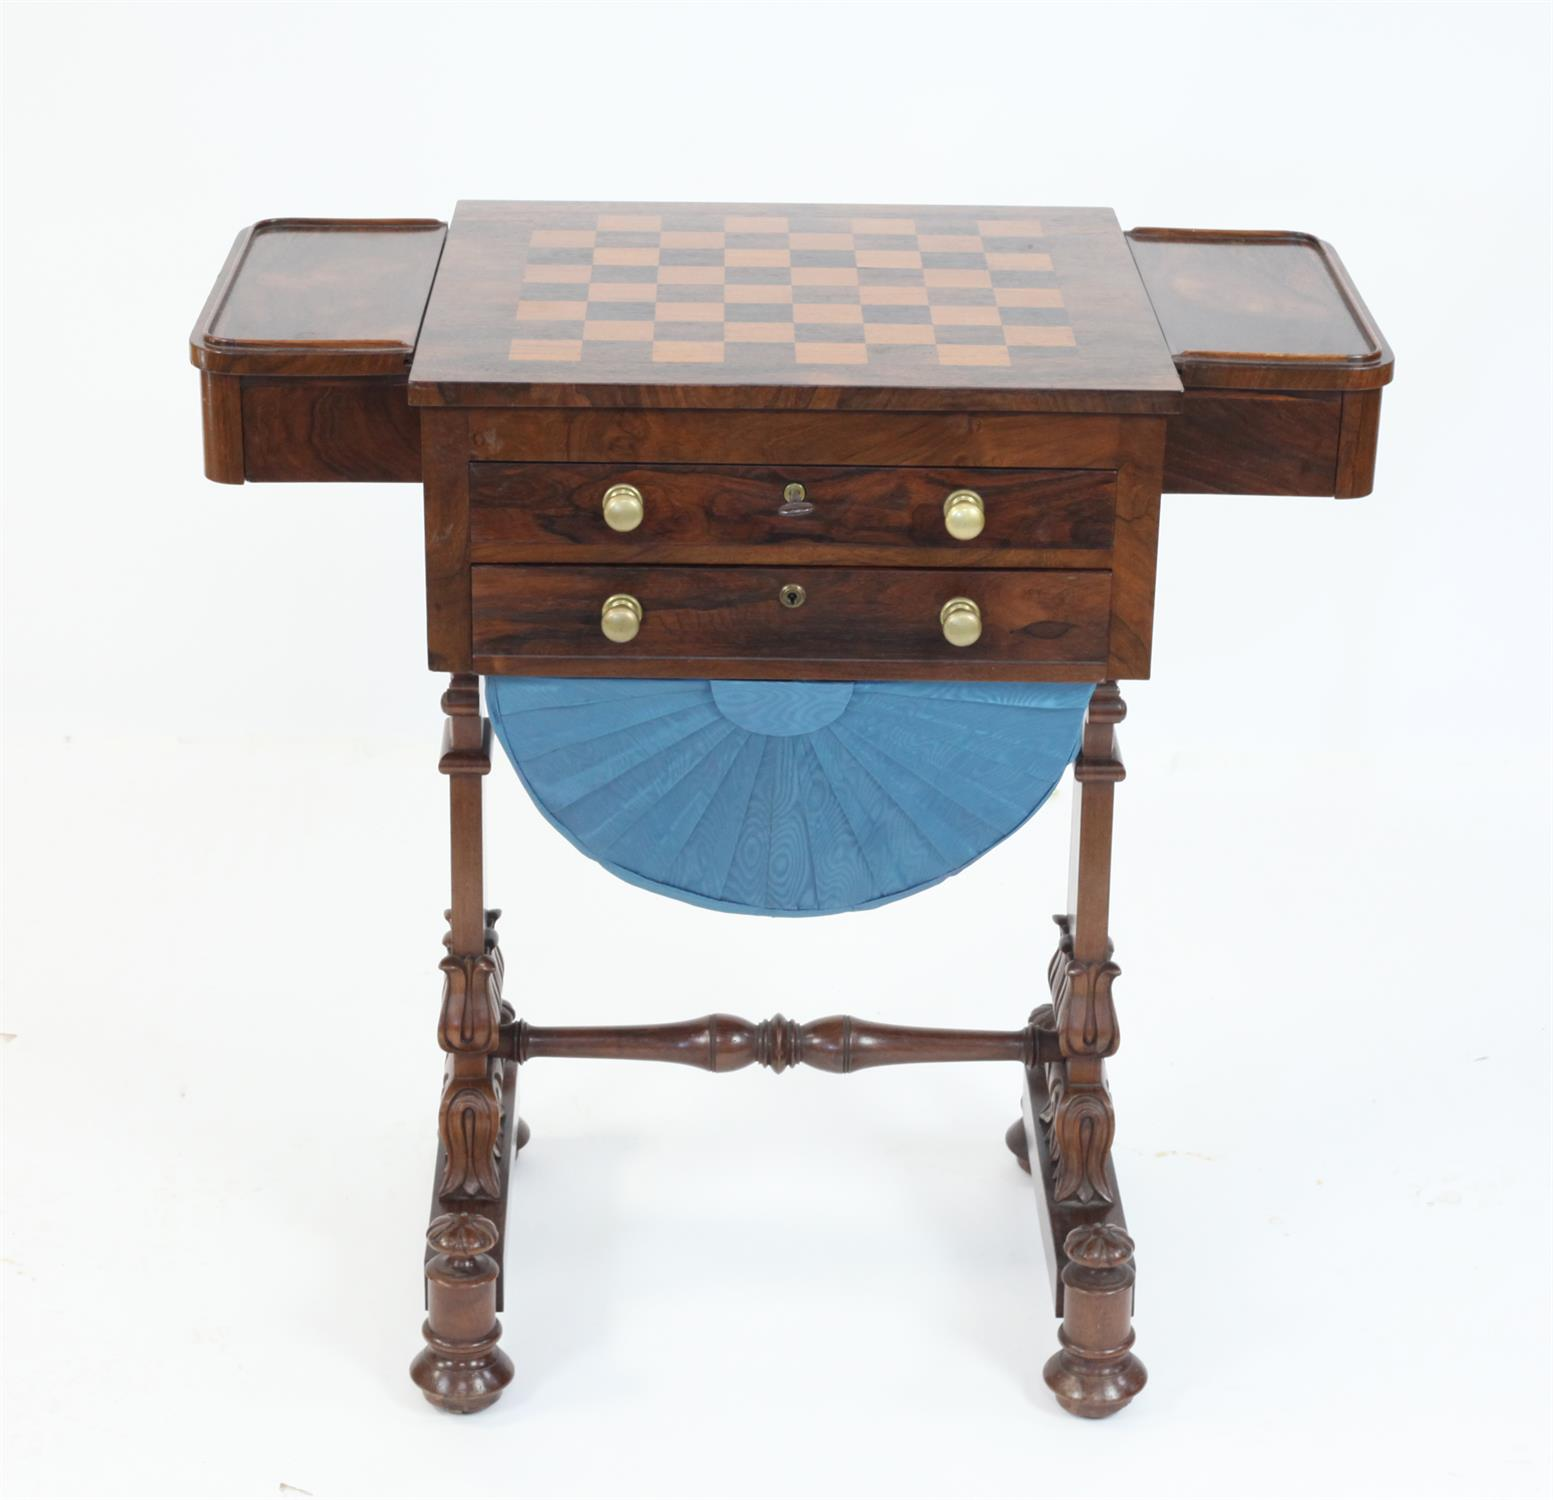 Early 19th Century rosewood games and work table with chessboard top flanked by drawers over